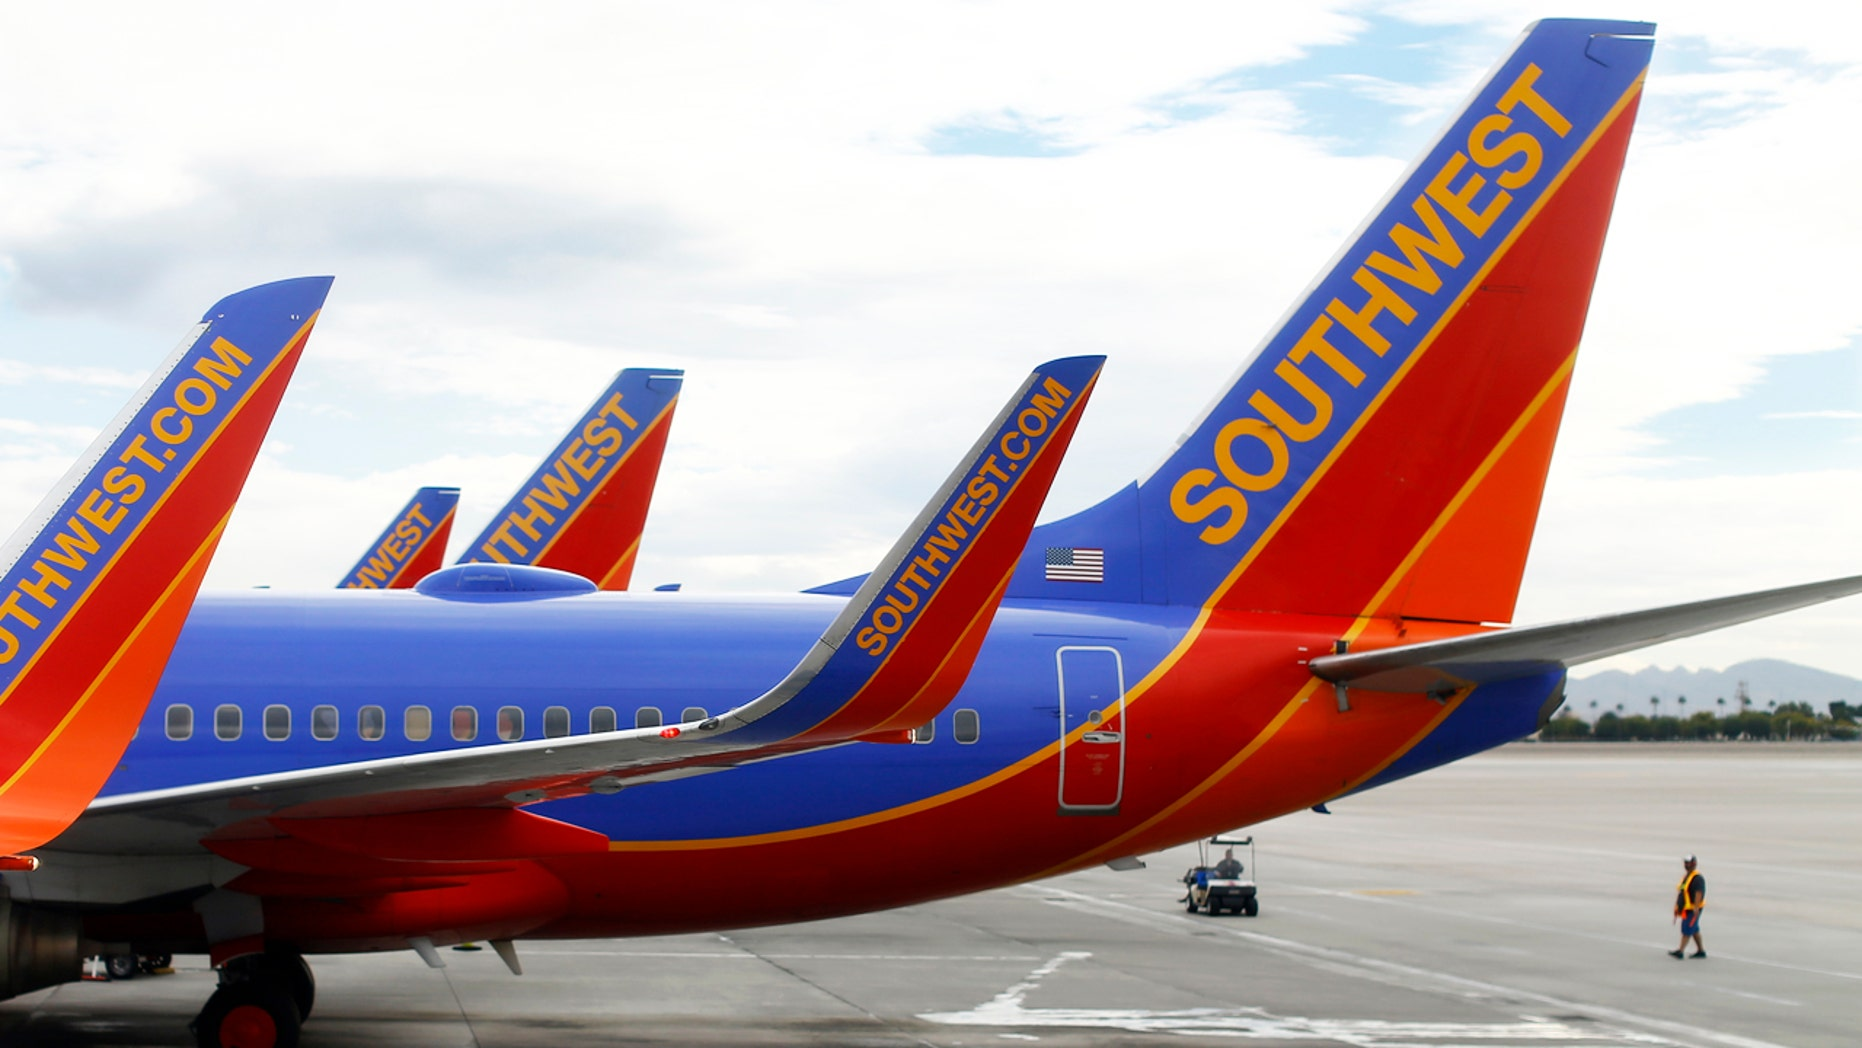 Southwest commercial airliners taxied at McCarran International Airport in Las Vegas, November 19, 2014.  REUTERS/Mike Blake (UNITED STATES - Tags: TRANSPORT BUSINESS) - RTR4ET8Z